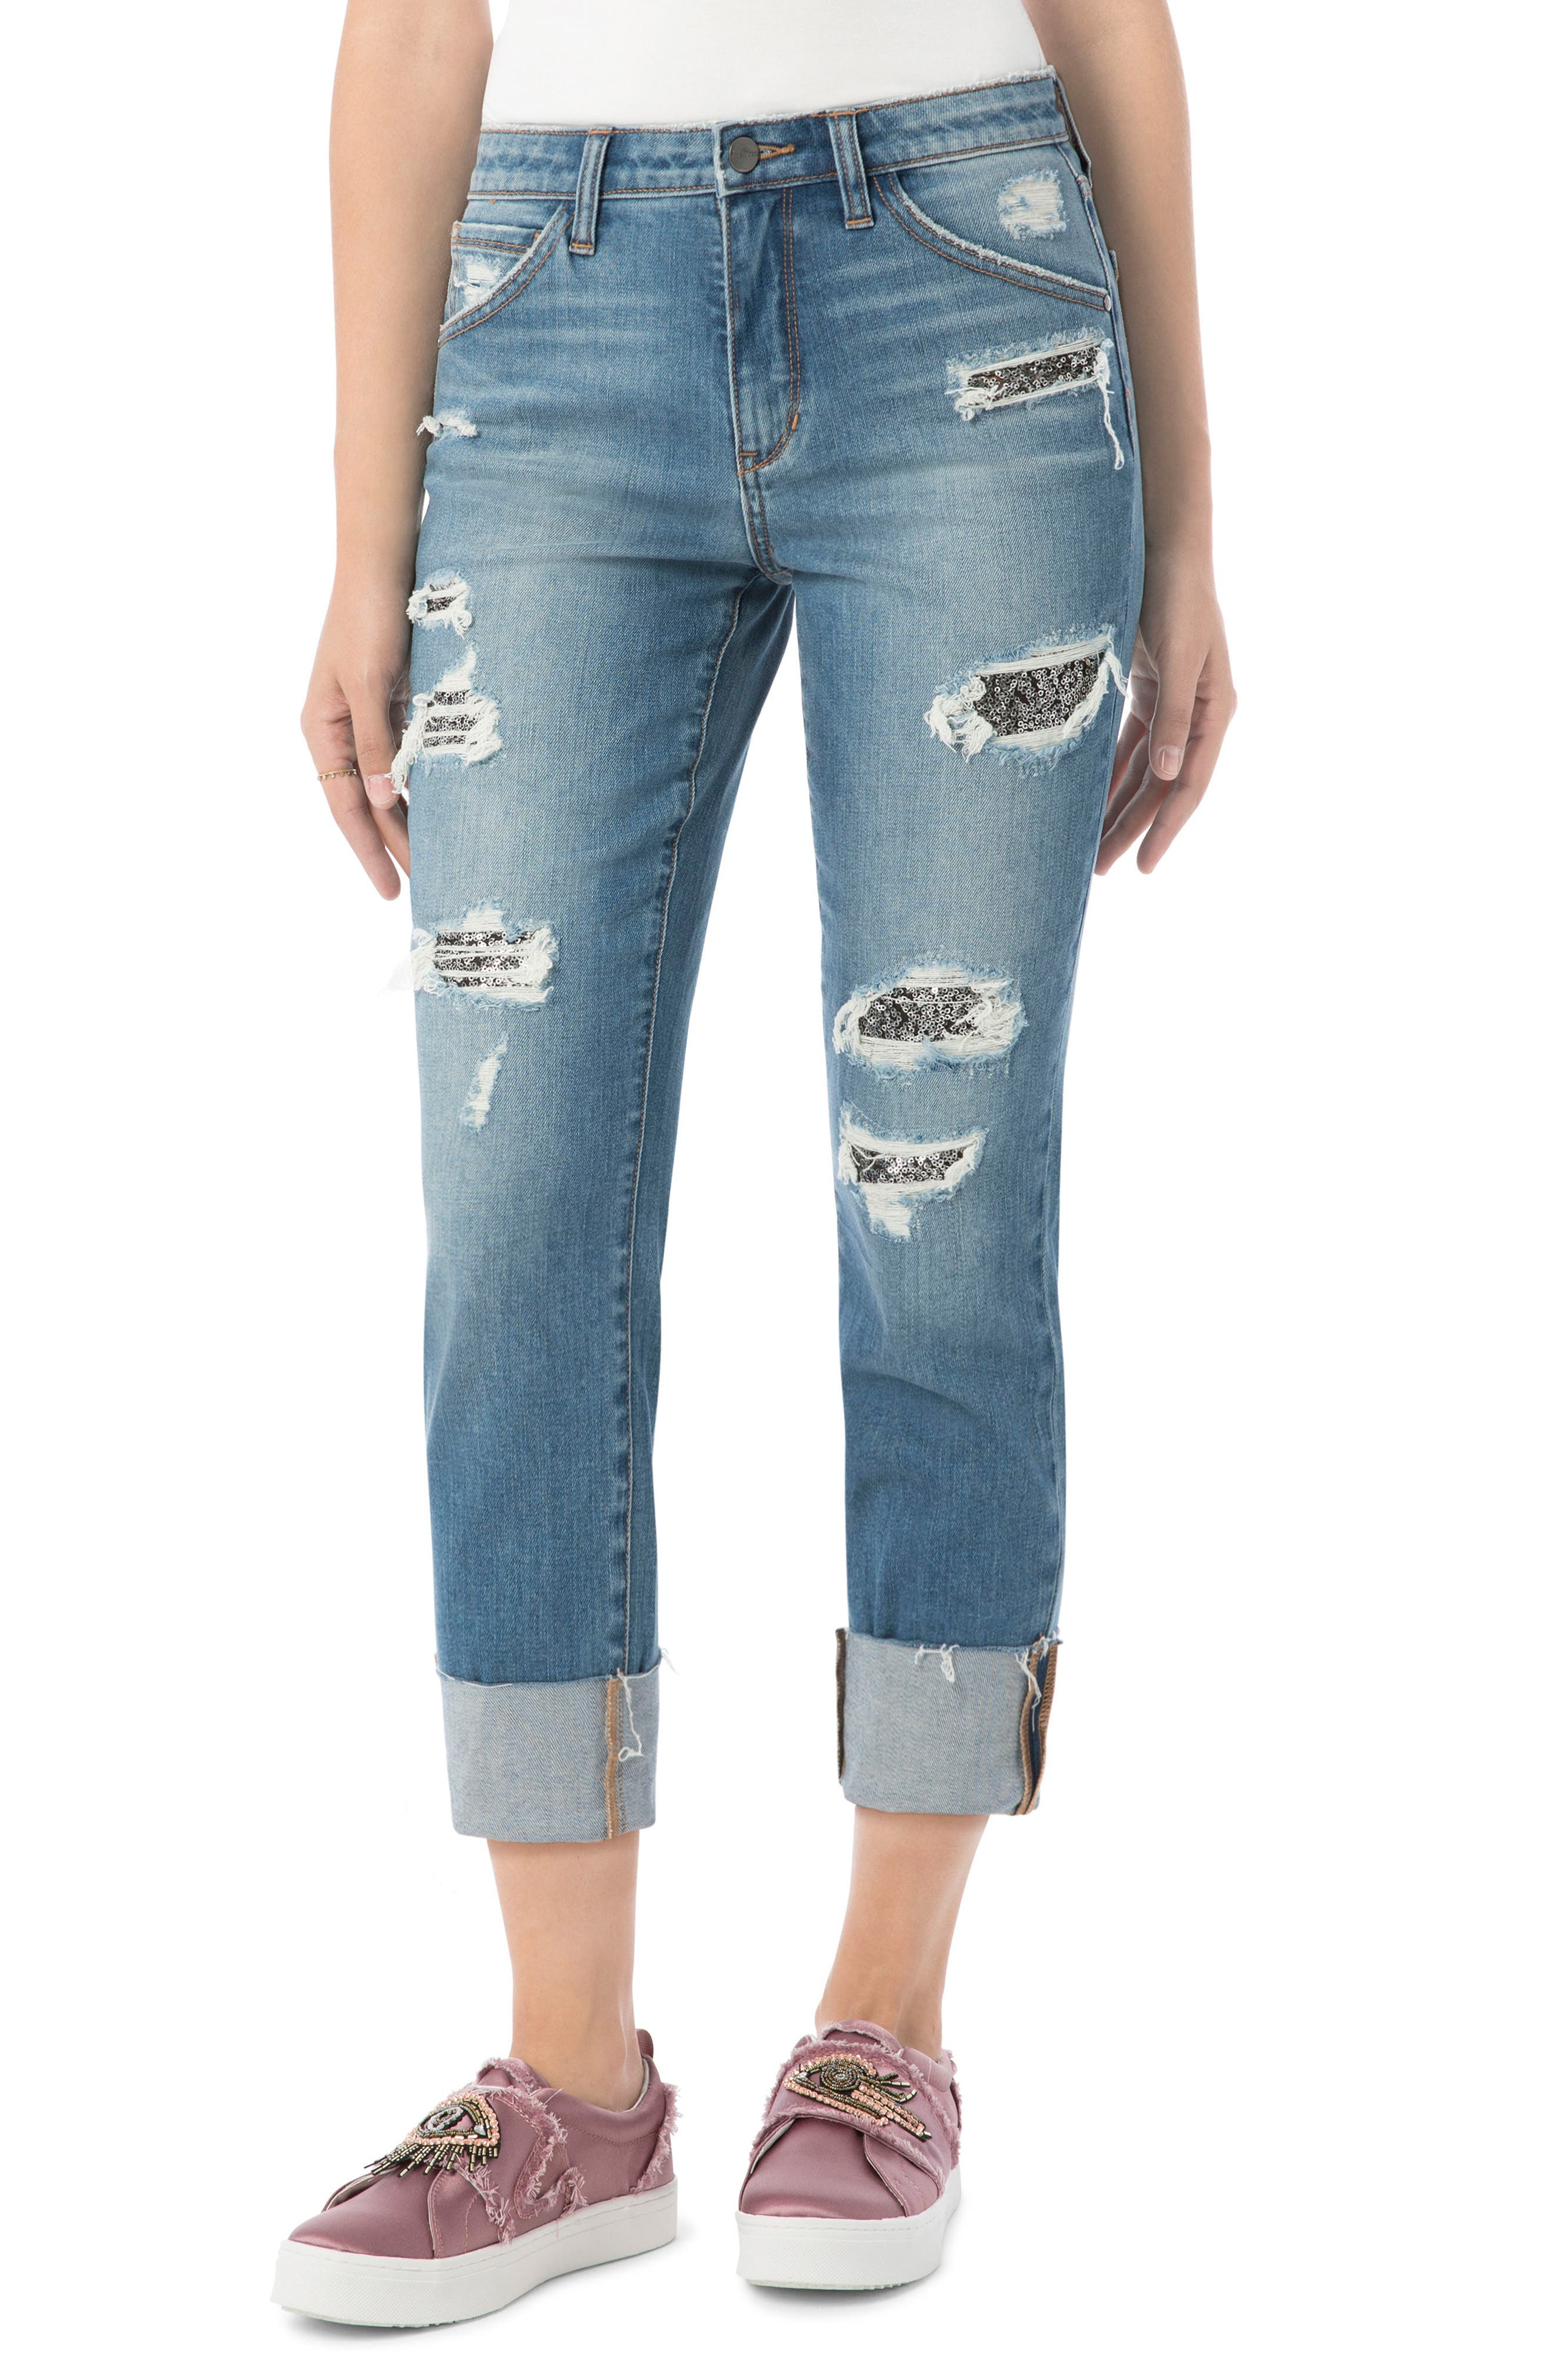 Alternate Image 1 Selected - Sam Edelman The Mary Jane High Rise Jean (Bonnie)